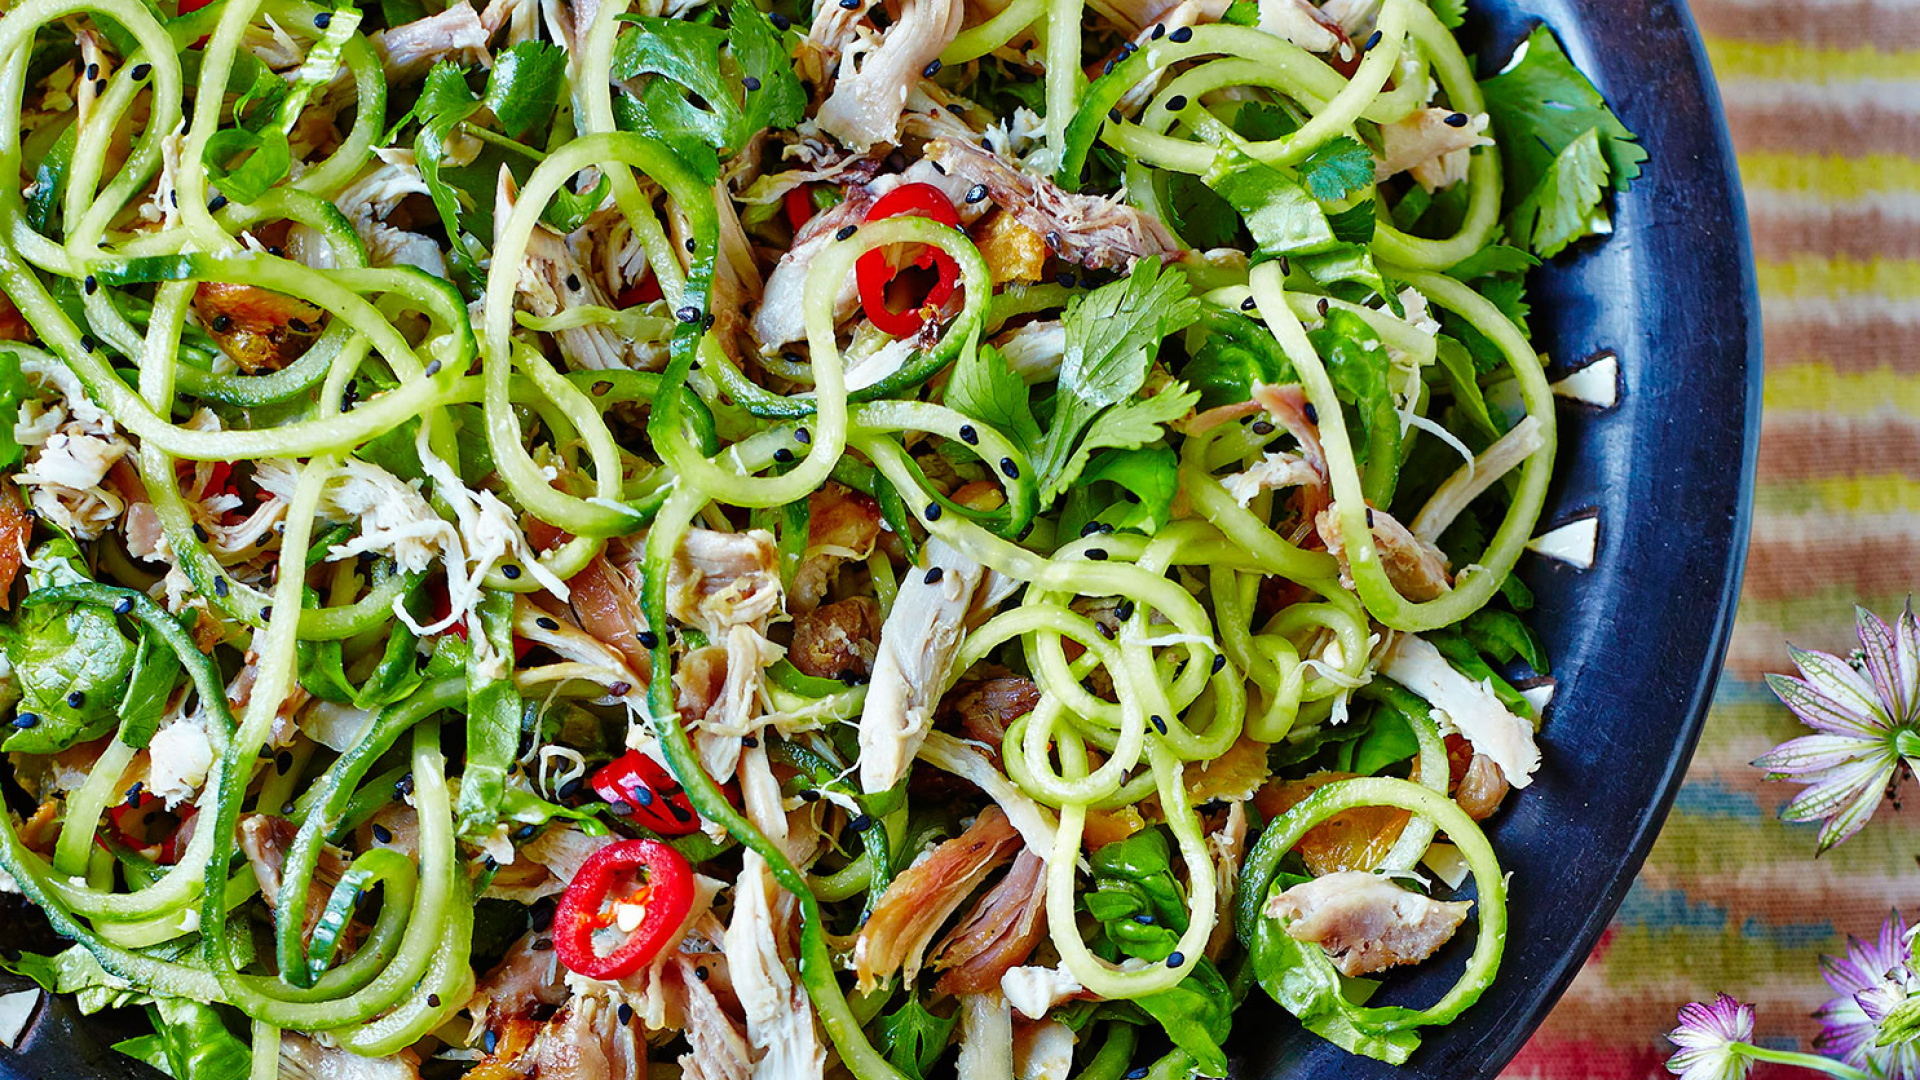 Hemsley + Hemsley's sesame chicken salad recipe